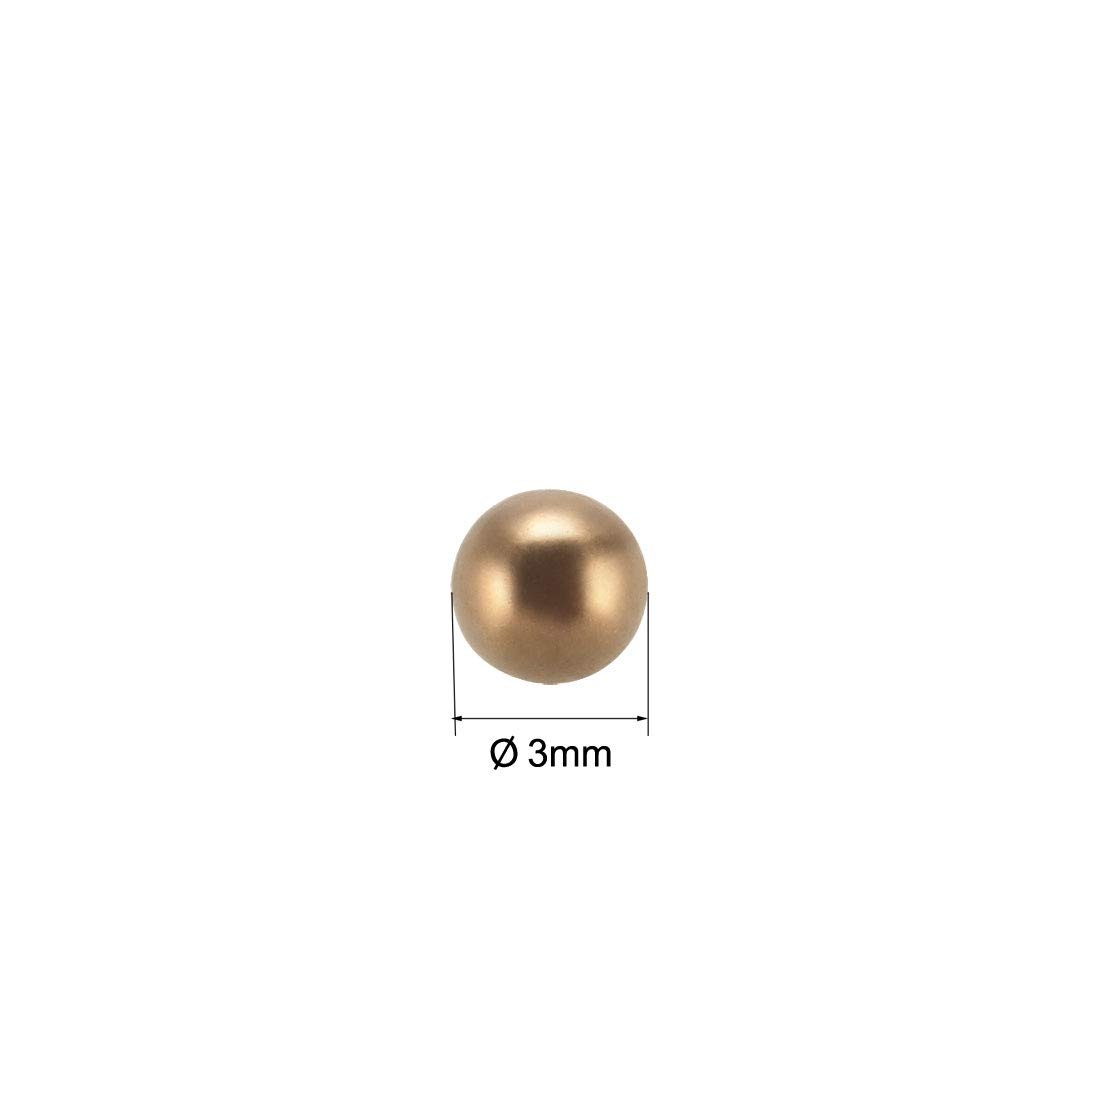 uxcell 3mm Precision Solid Brass Bearing Balls 100pcs